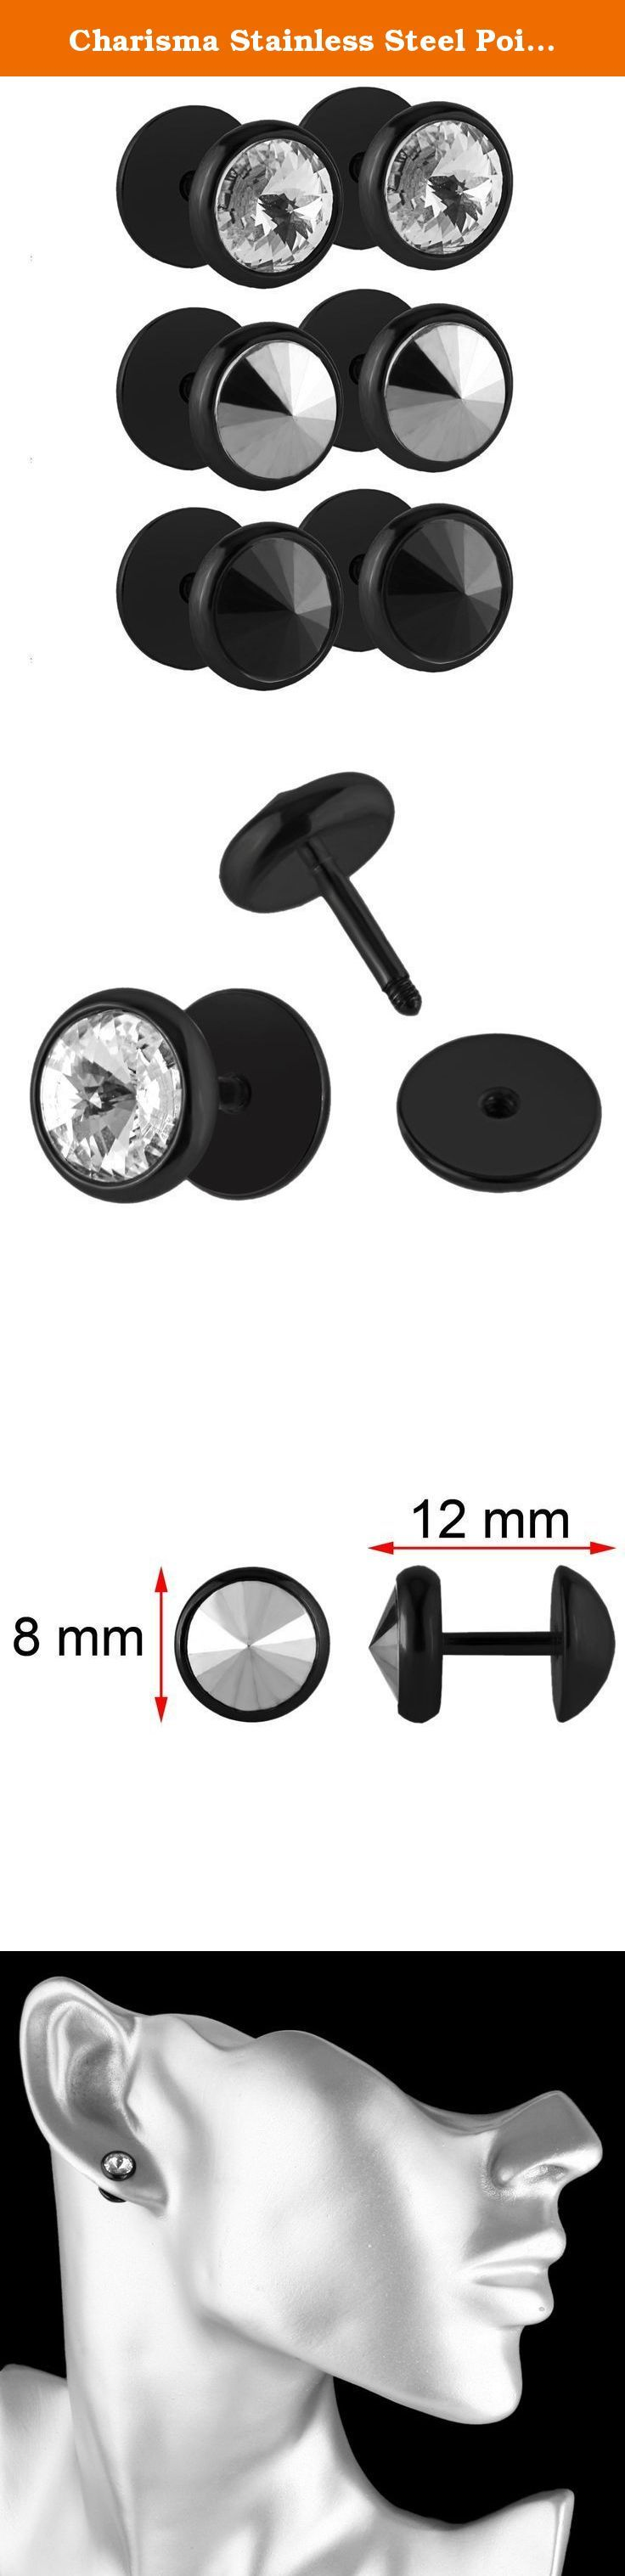 Charisma Stainless Steel Pointy CZ Crystal Stone Screw Stud Earrings Dome Dumbbell Plugs (Black). Charisma Jewelry: Best Jewelry Choice You Could Never Miss Charisma Jewelry are committed to providing you with the latest and most popular jewelry at affordable price. We attach great importance to customer experience and striving for 100% customer satisfaction. Find beautiful jewelry that highlight your charm or a special gift for your loved one from Charisma Collection. Why Choose Charisma...